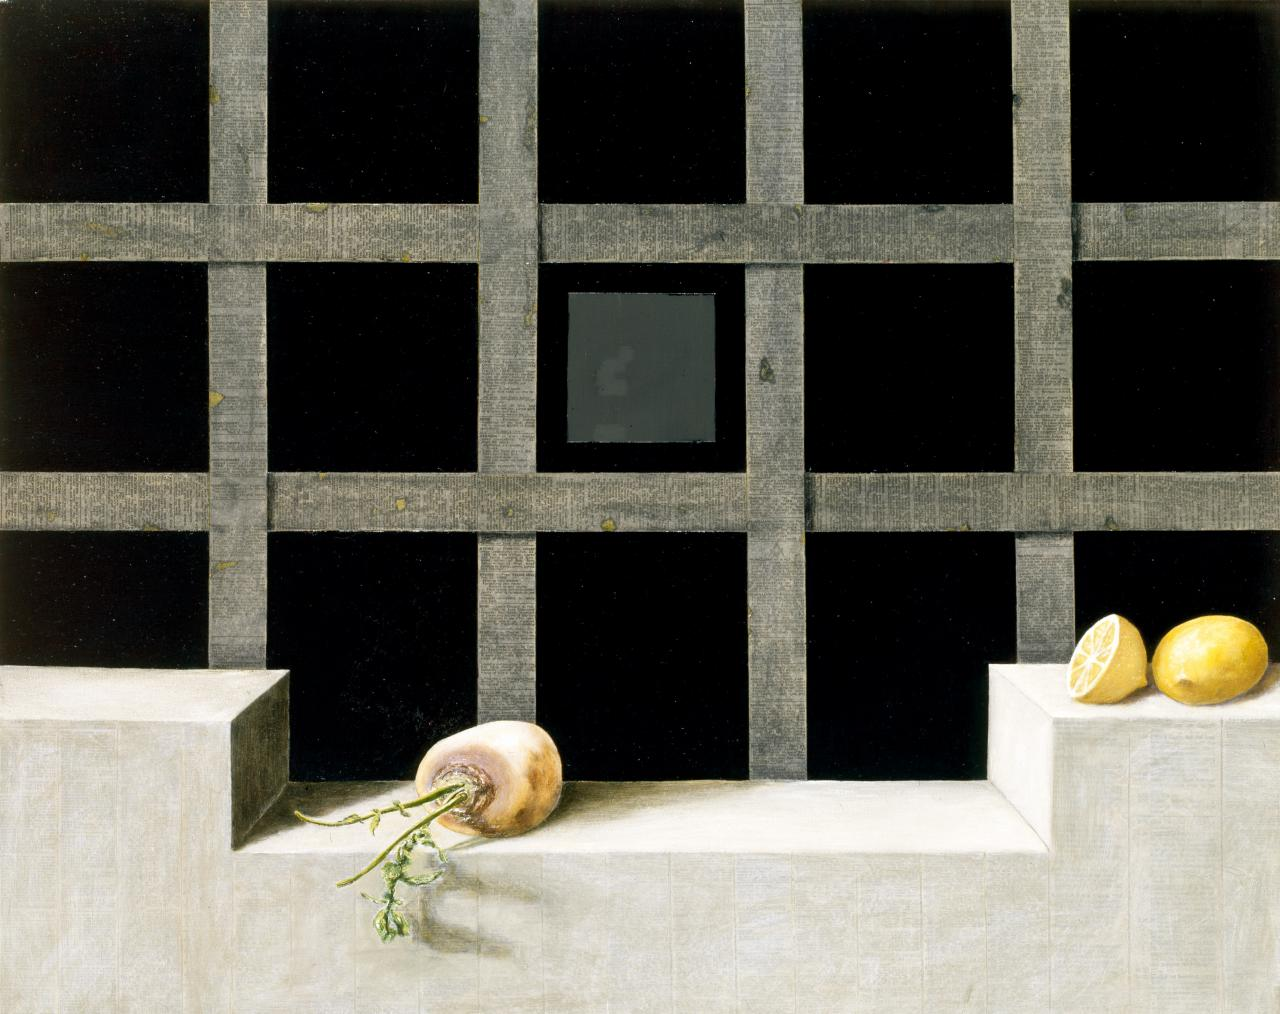 Vanitas: Still life with blackboard